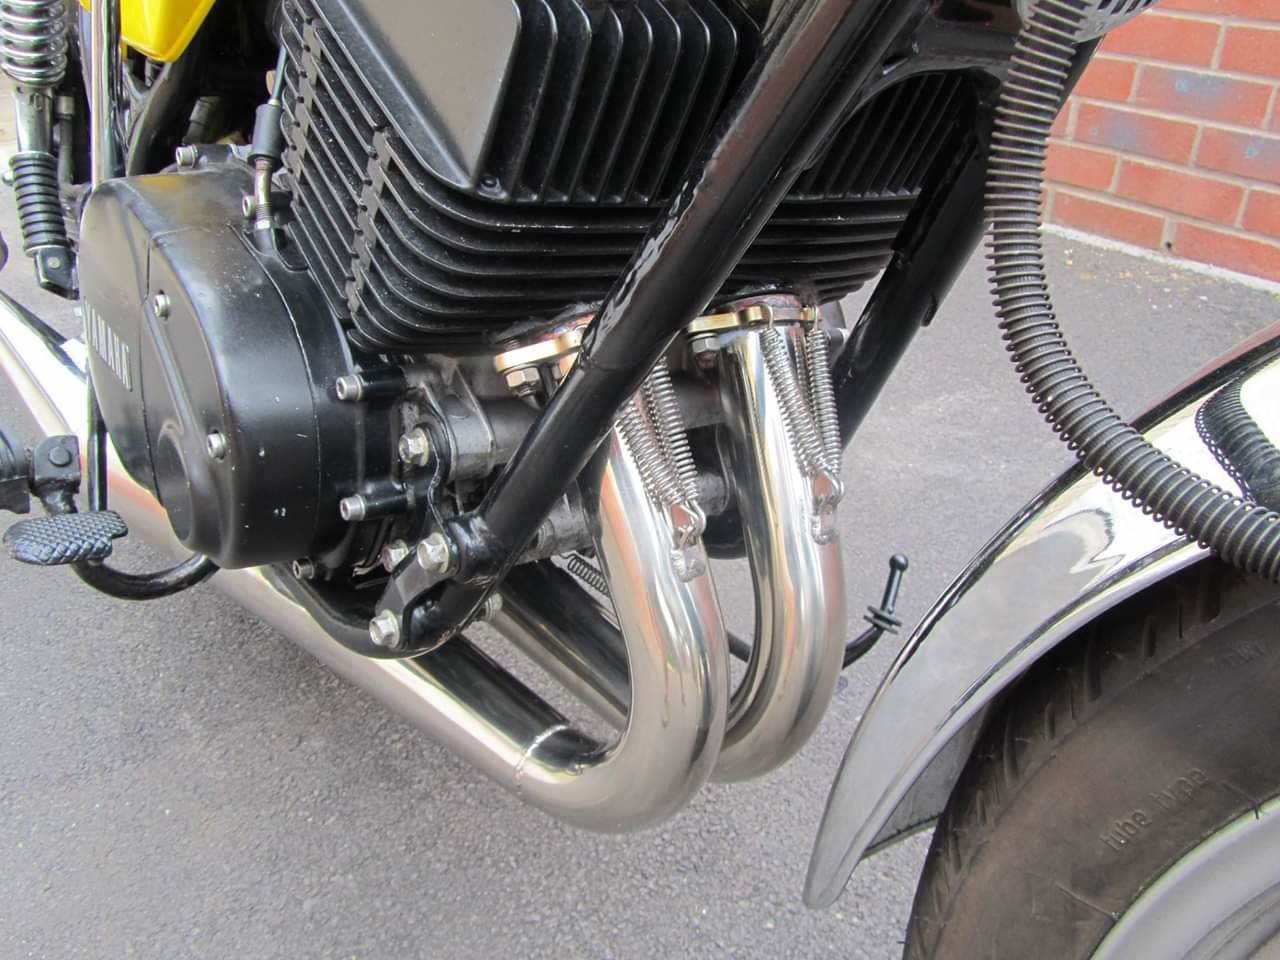 1977 Yamaha RD400 D UK spec  For Sale (picture 3 of 4)